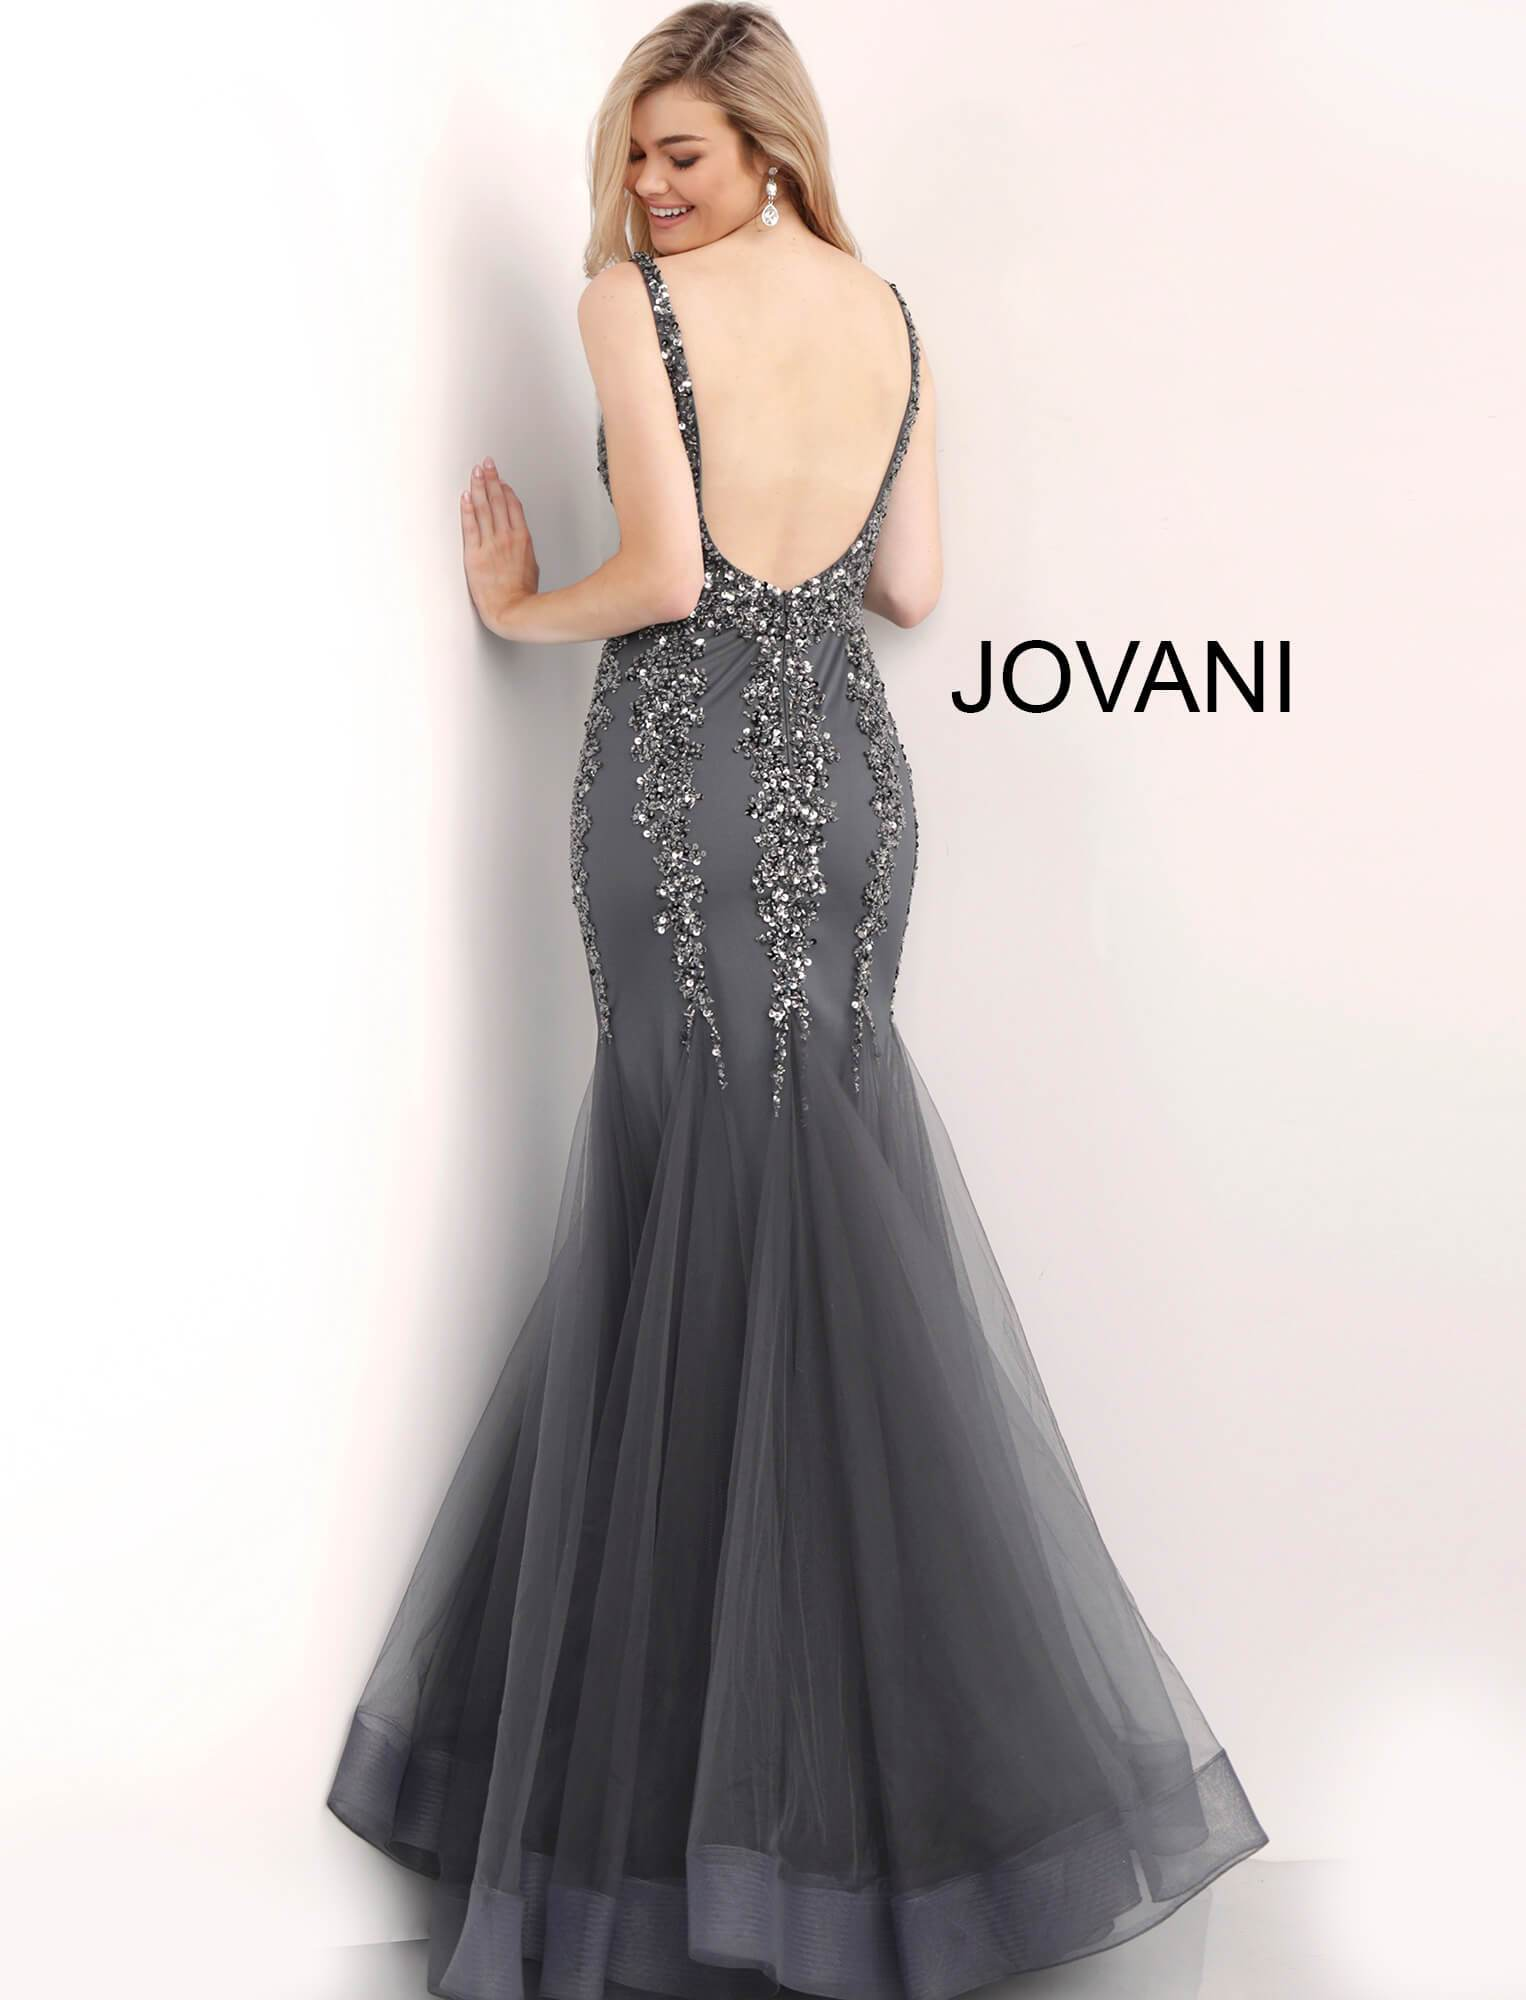 Jovani Mermaid Evening Gown - Gissings Boutique